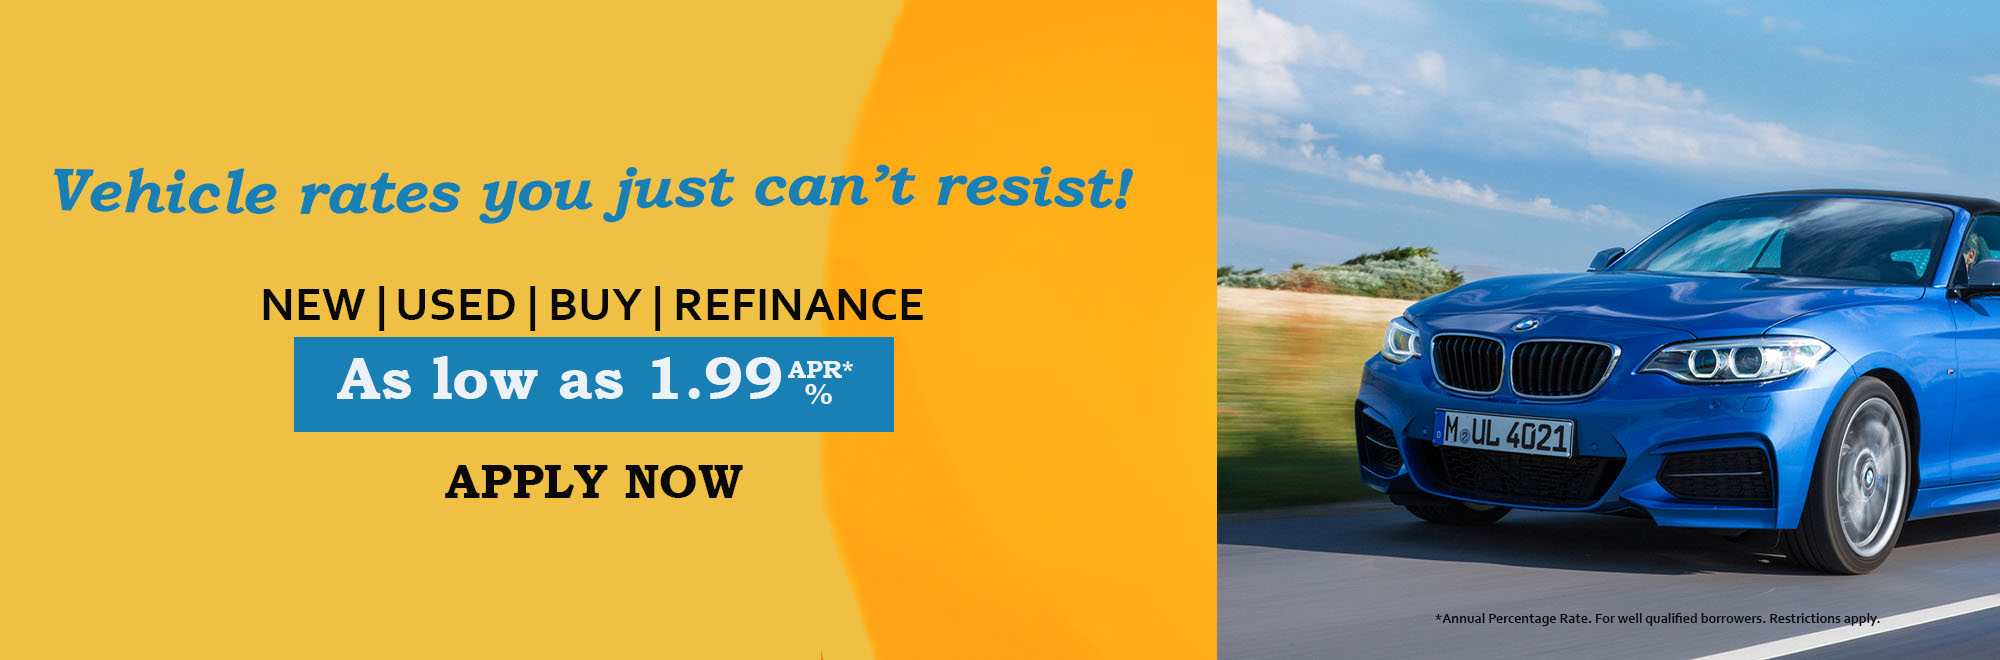 New, used, buy, refinance. Vehicle rates as low as 1.99% APR. Apply Now.